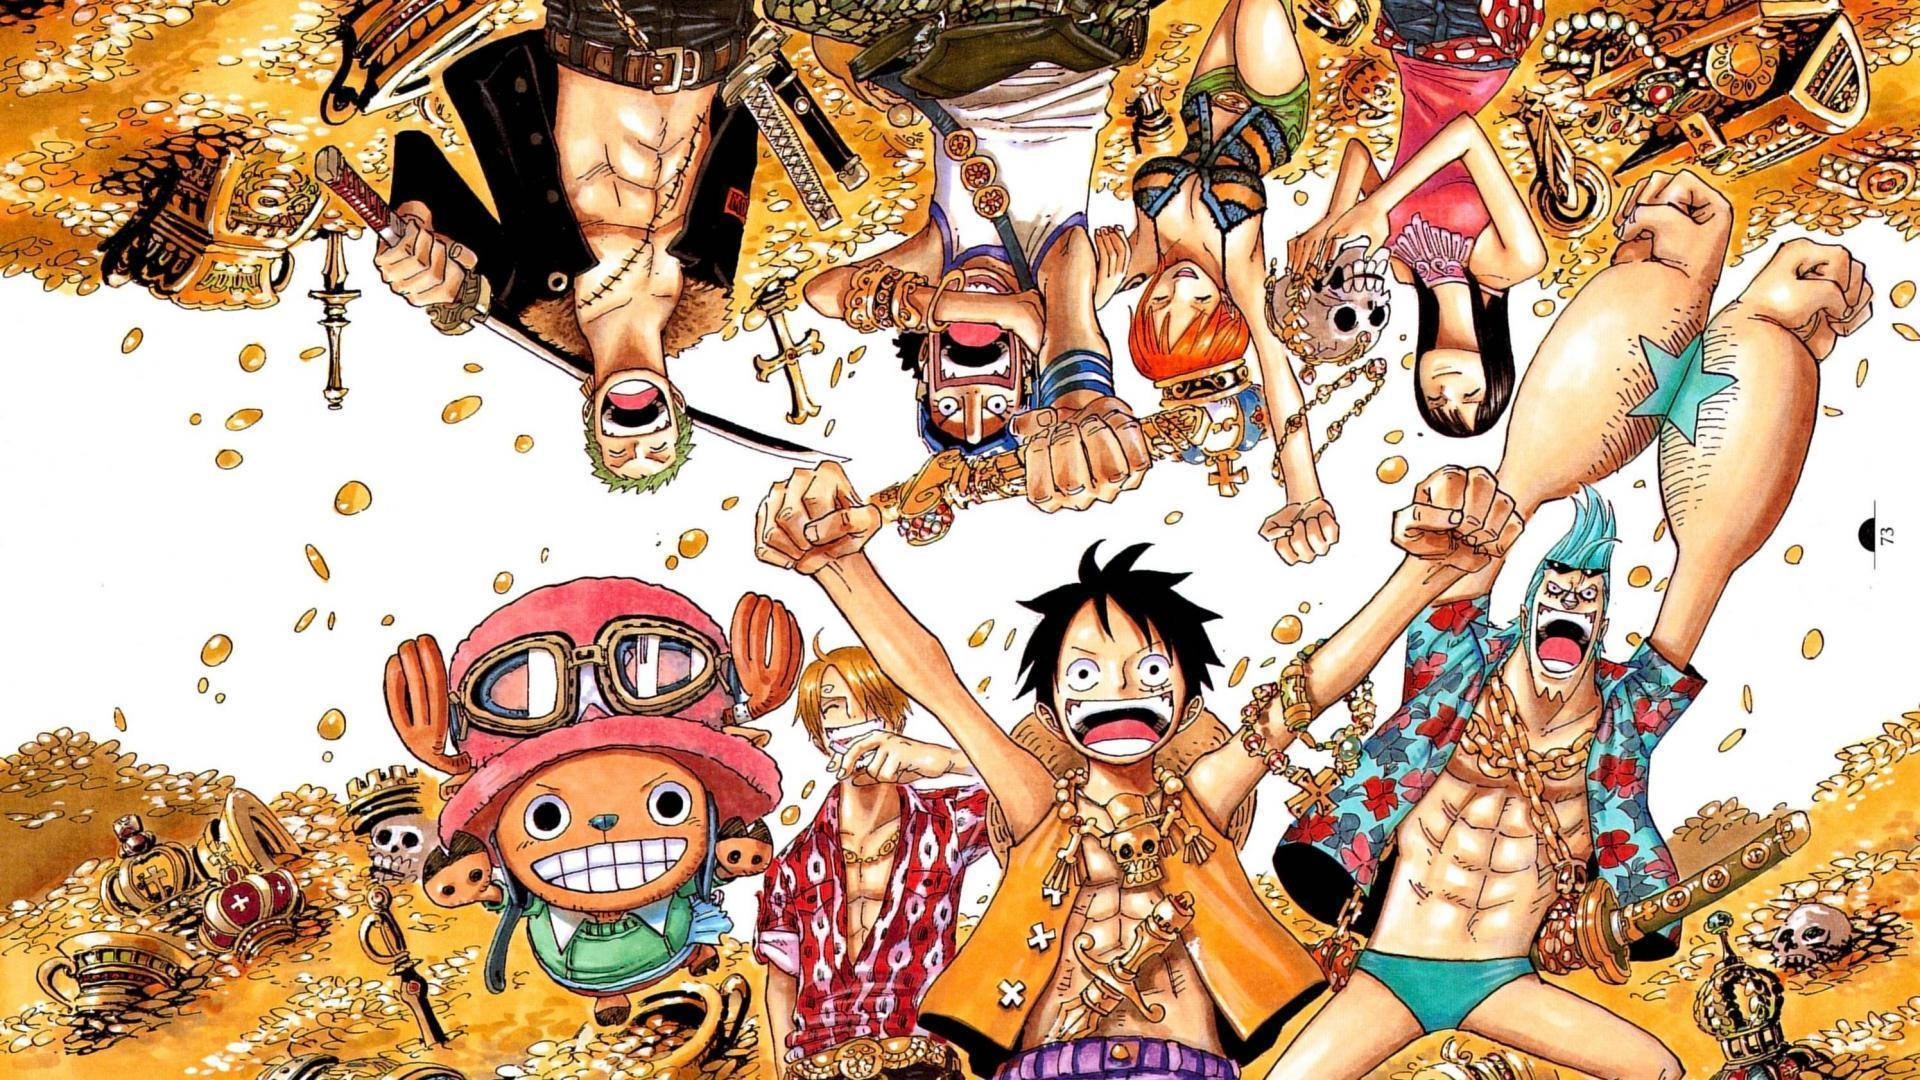 Image For > One Piece Wallpapers 1920x1080